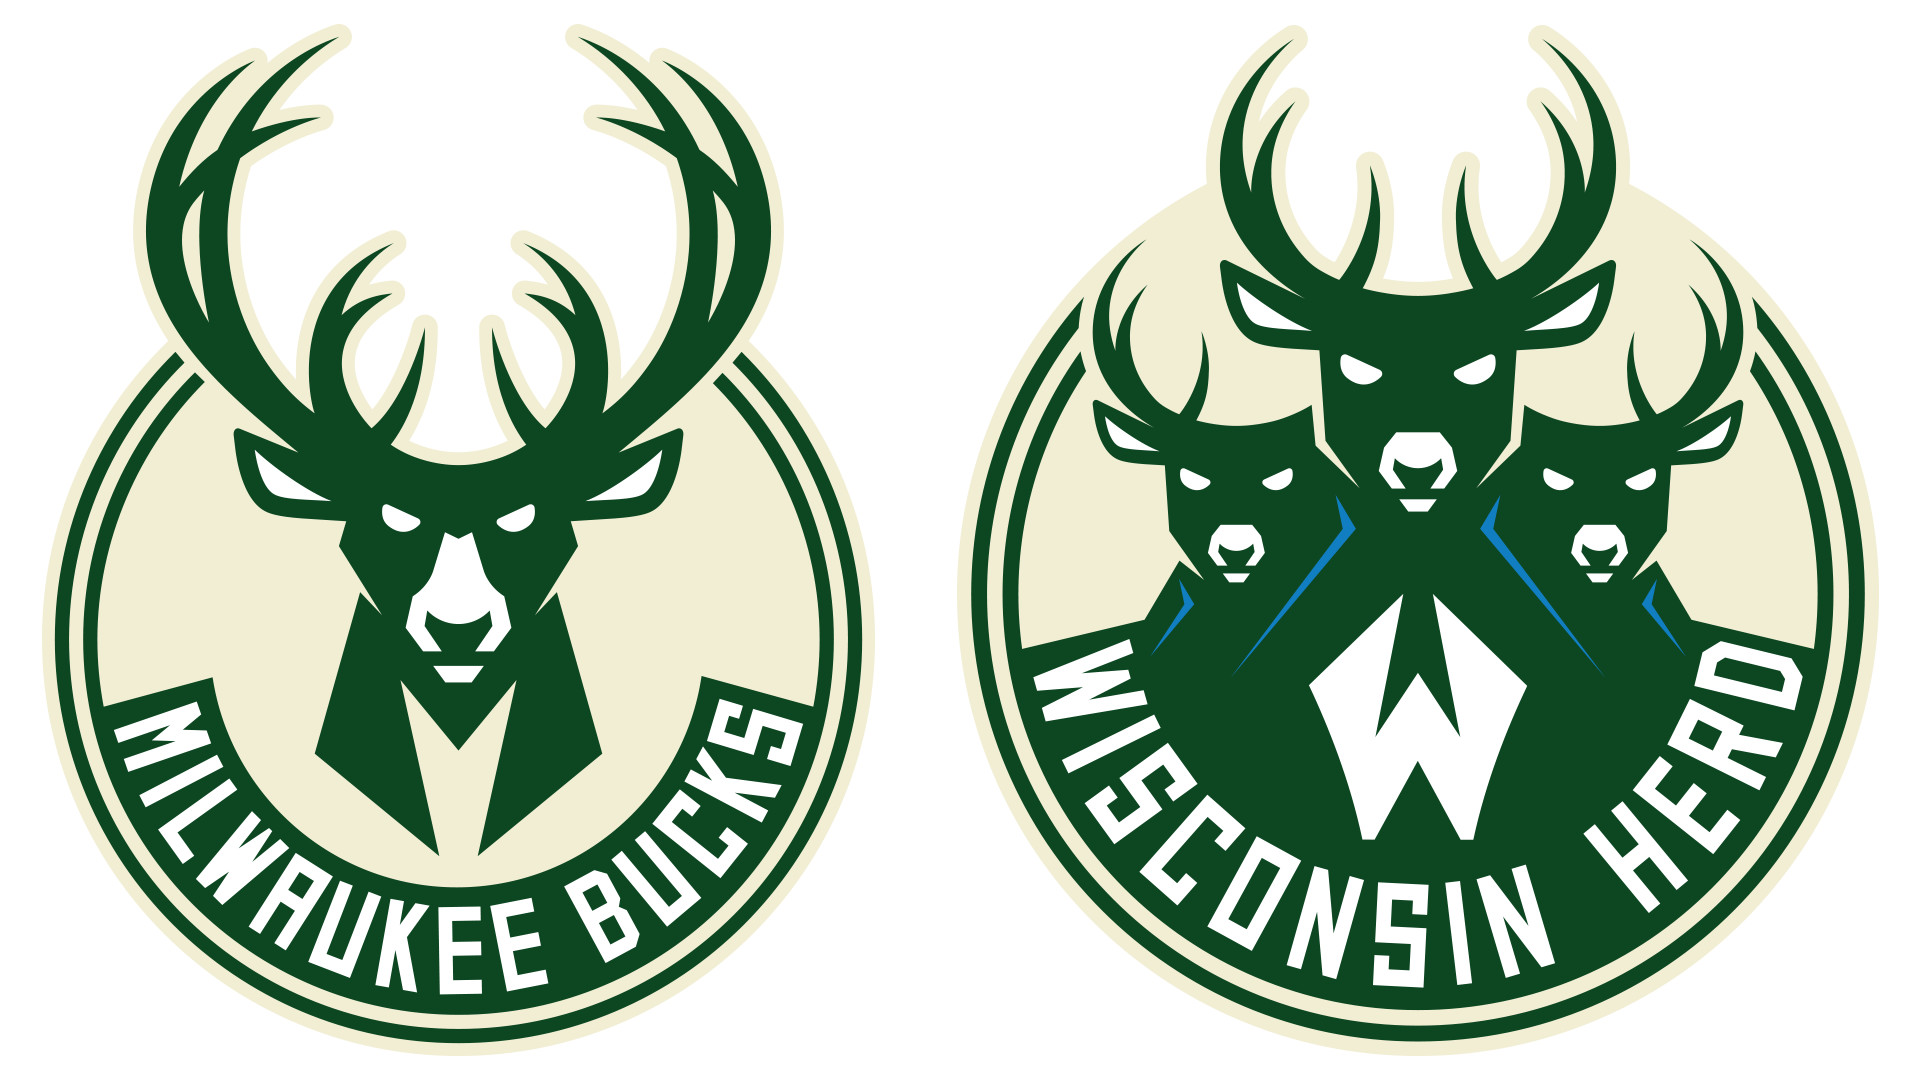 The Wisconsin Herd identity utilizes the visual language of the Milwaukee  Bucks' recently updated brand, illustrating their connection to their  parent club …